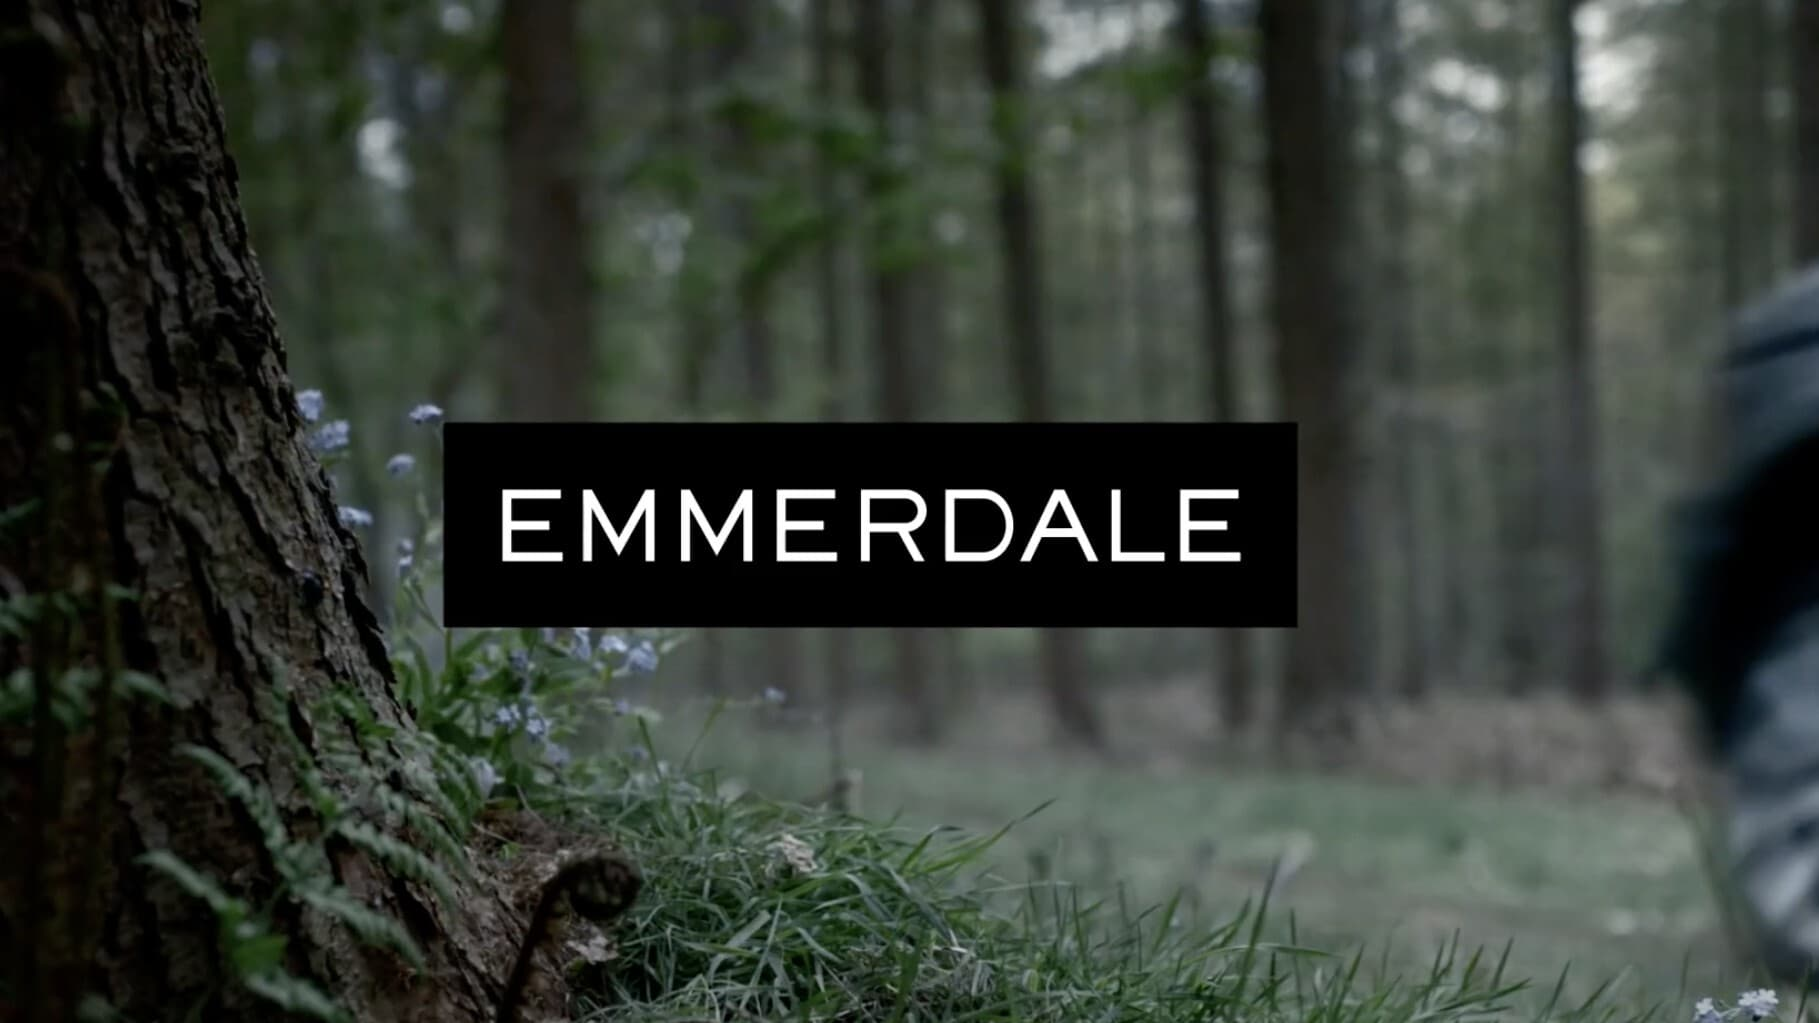 Emmerdale - Season 36 Episode 177 : August 1, 2007